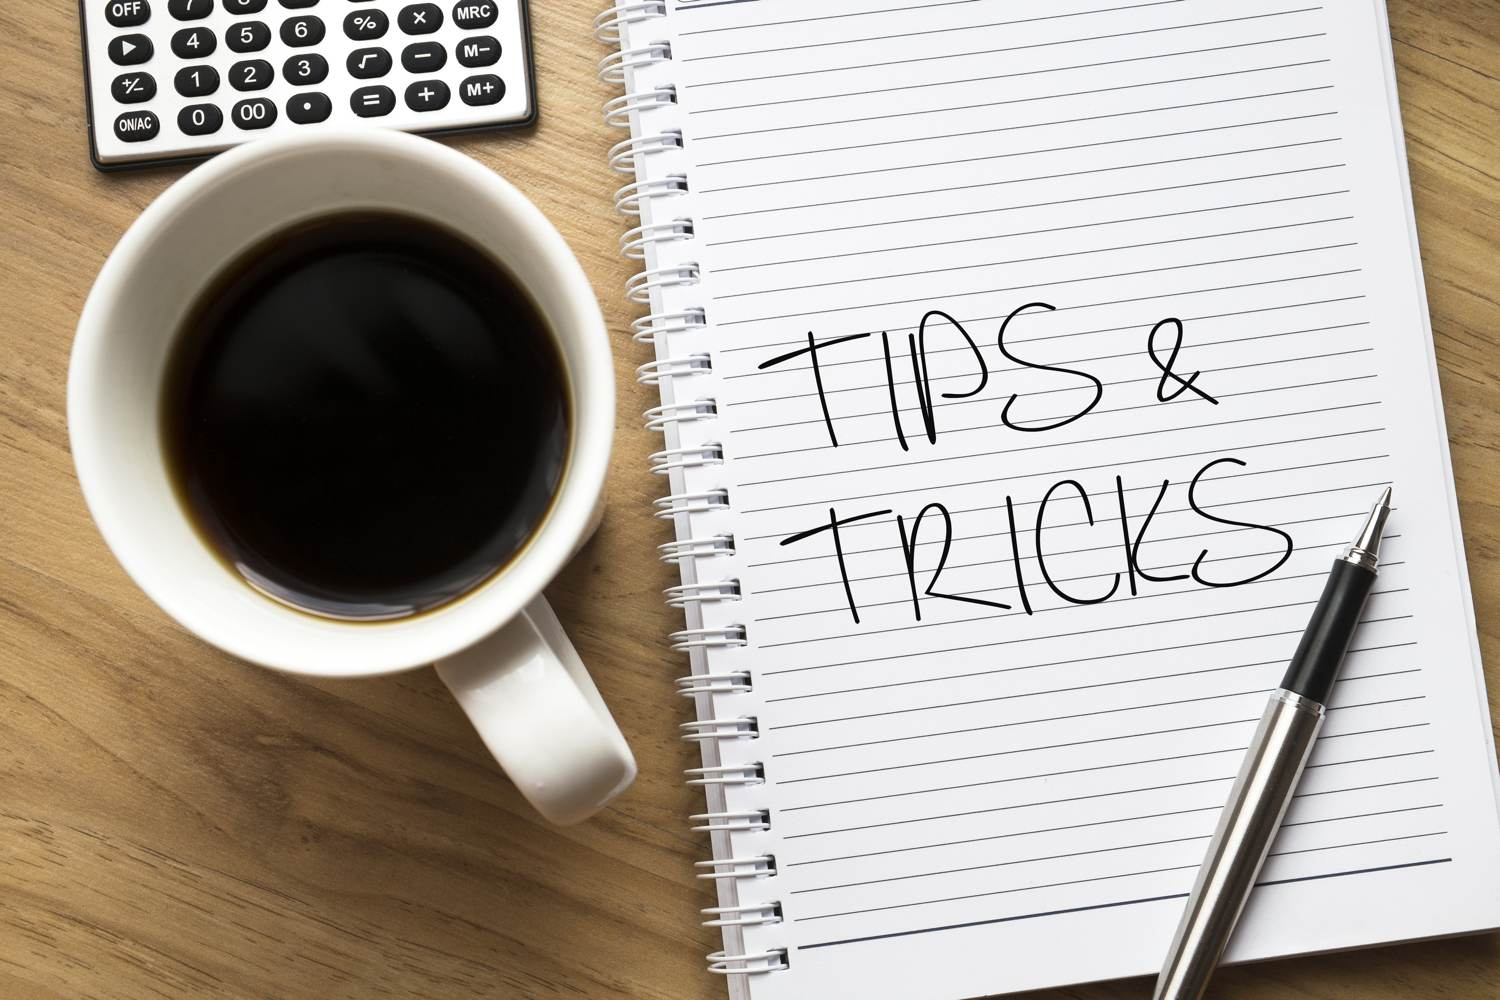 Tips and tricks for planning a corporate event - Tips and tricks written on notebook, cup of coffee on left side